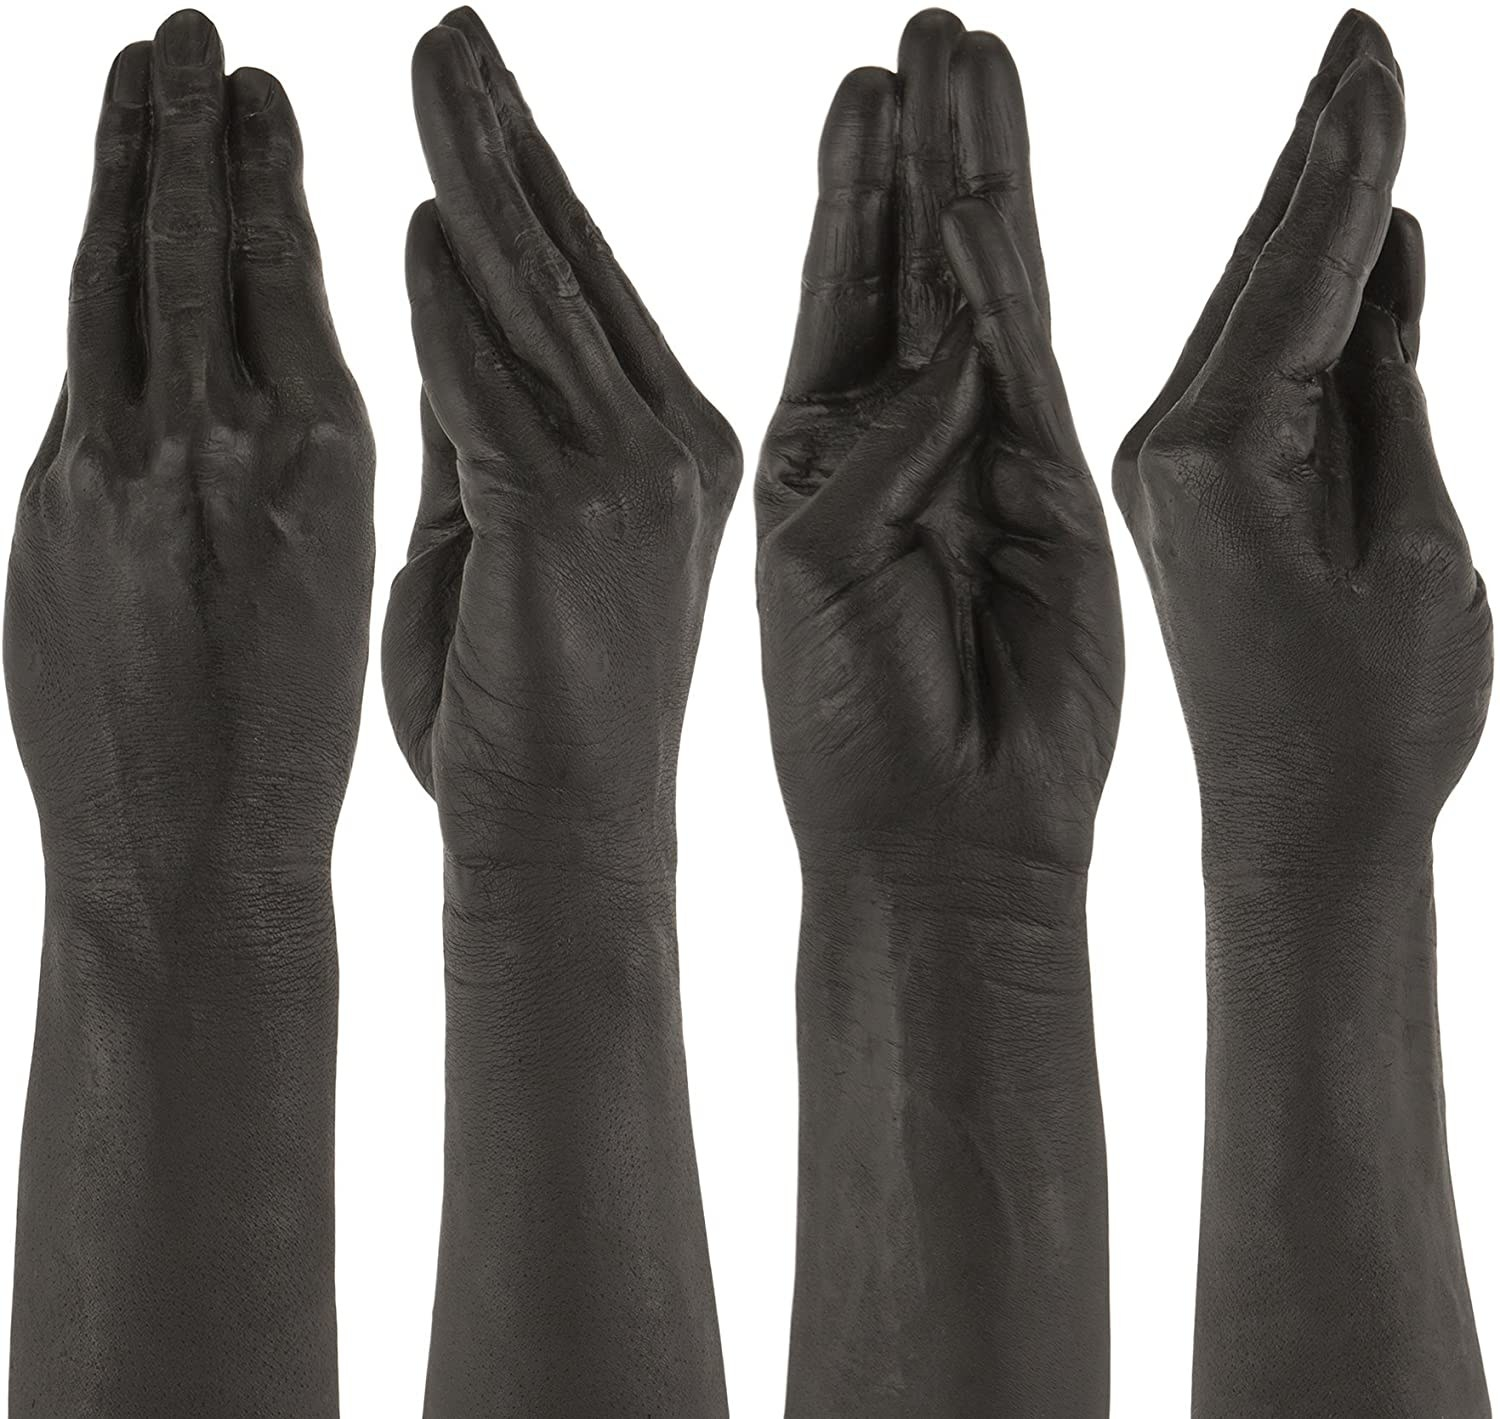 Black hand-shaped dildo from various angles